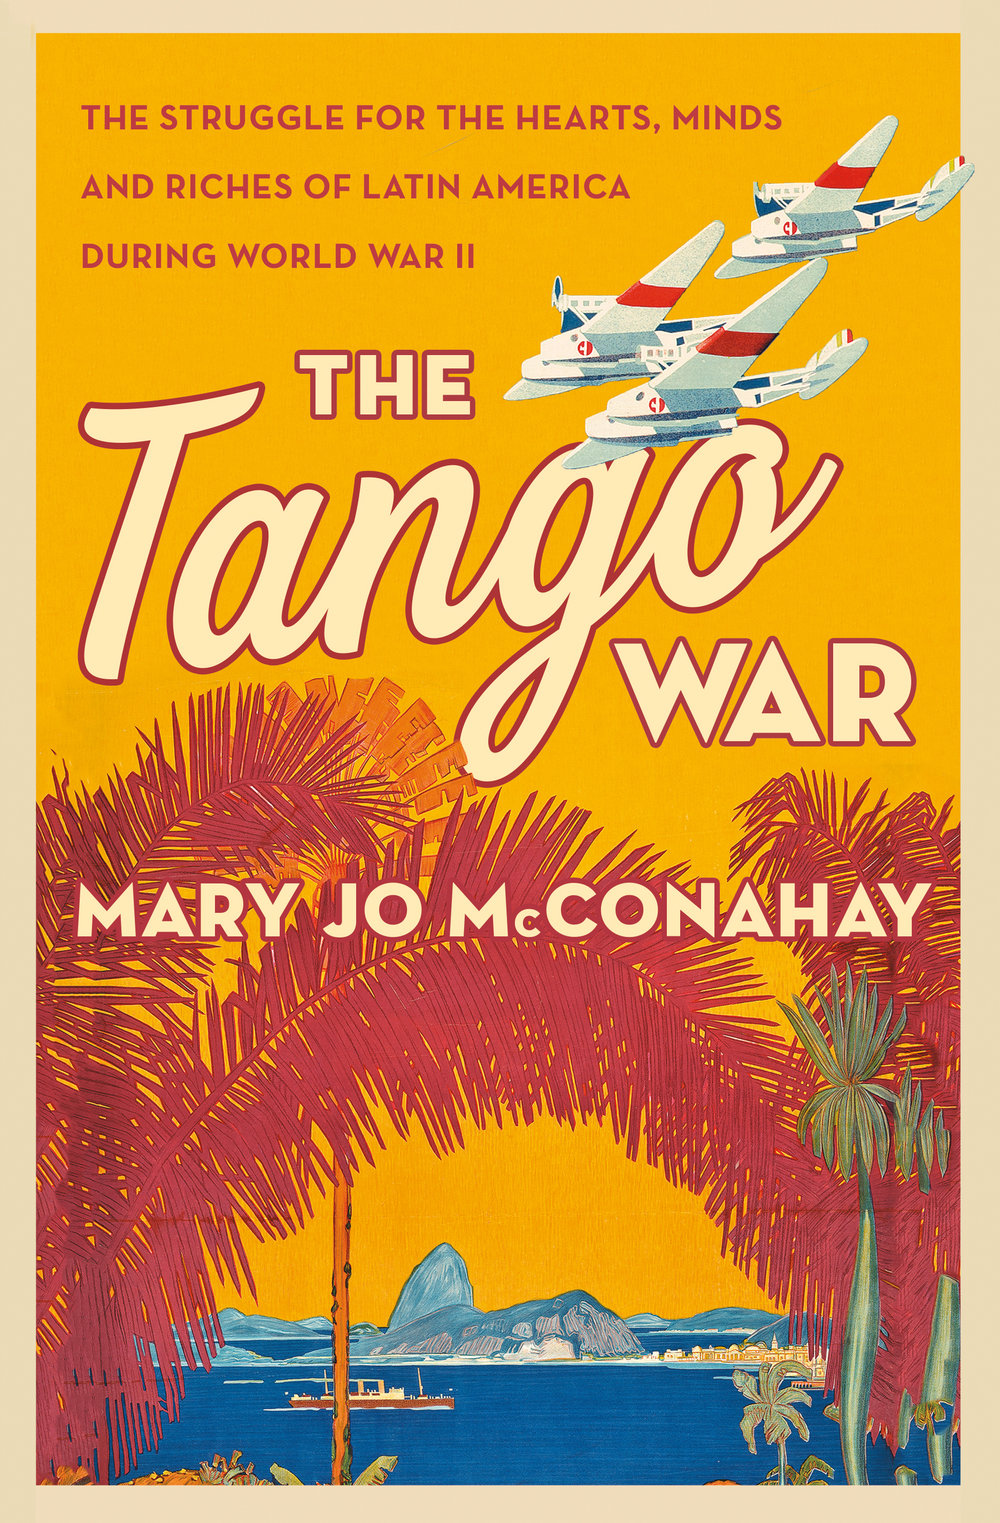 Judge a Book by Its Cover - Featuring Designs by Danielle Christopher | The Tango War by Mary Jo McConahay will be released on September 18th, 2018